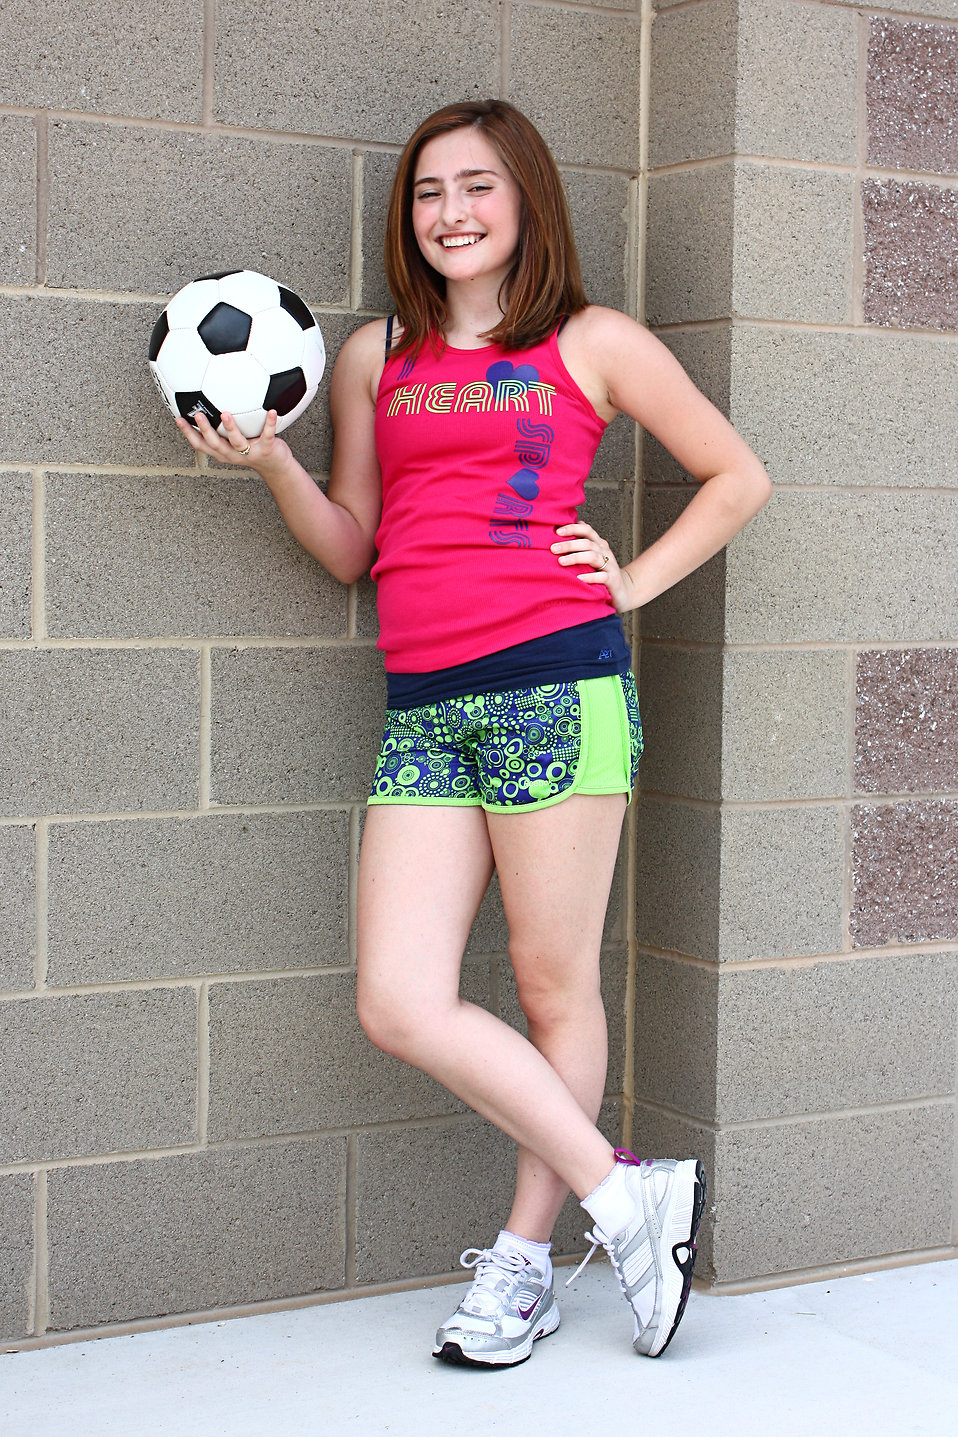 A cute young girl posing with a soccer ball : Free Stock Photo